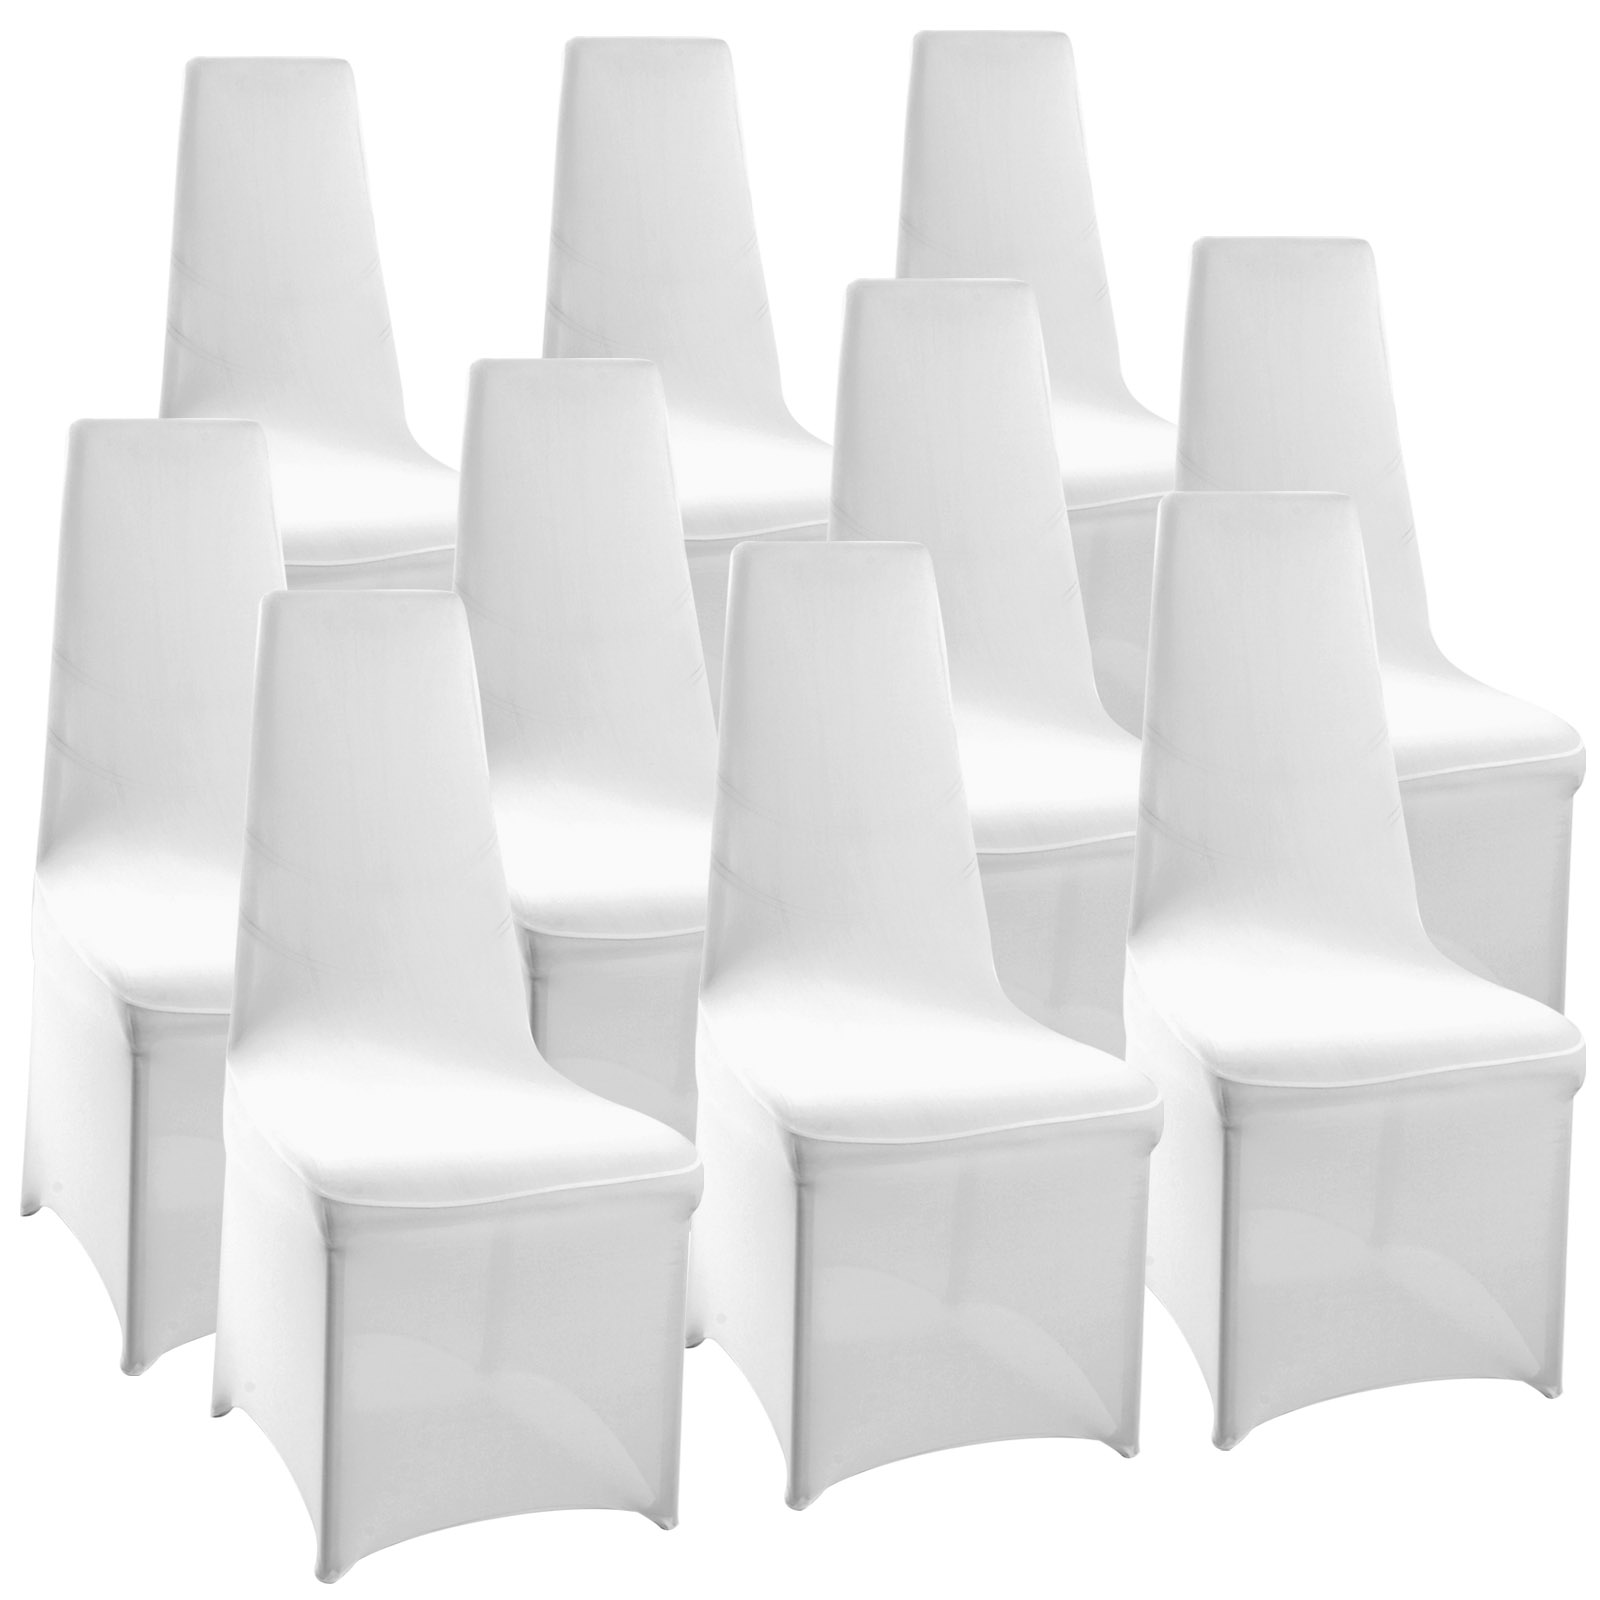 Pack of 10 Chair Covers Spandex Lycra Universal Slipcovers Dining